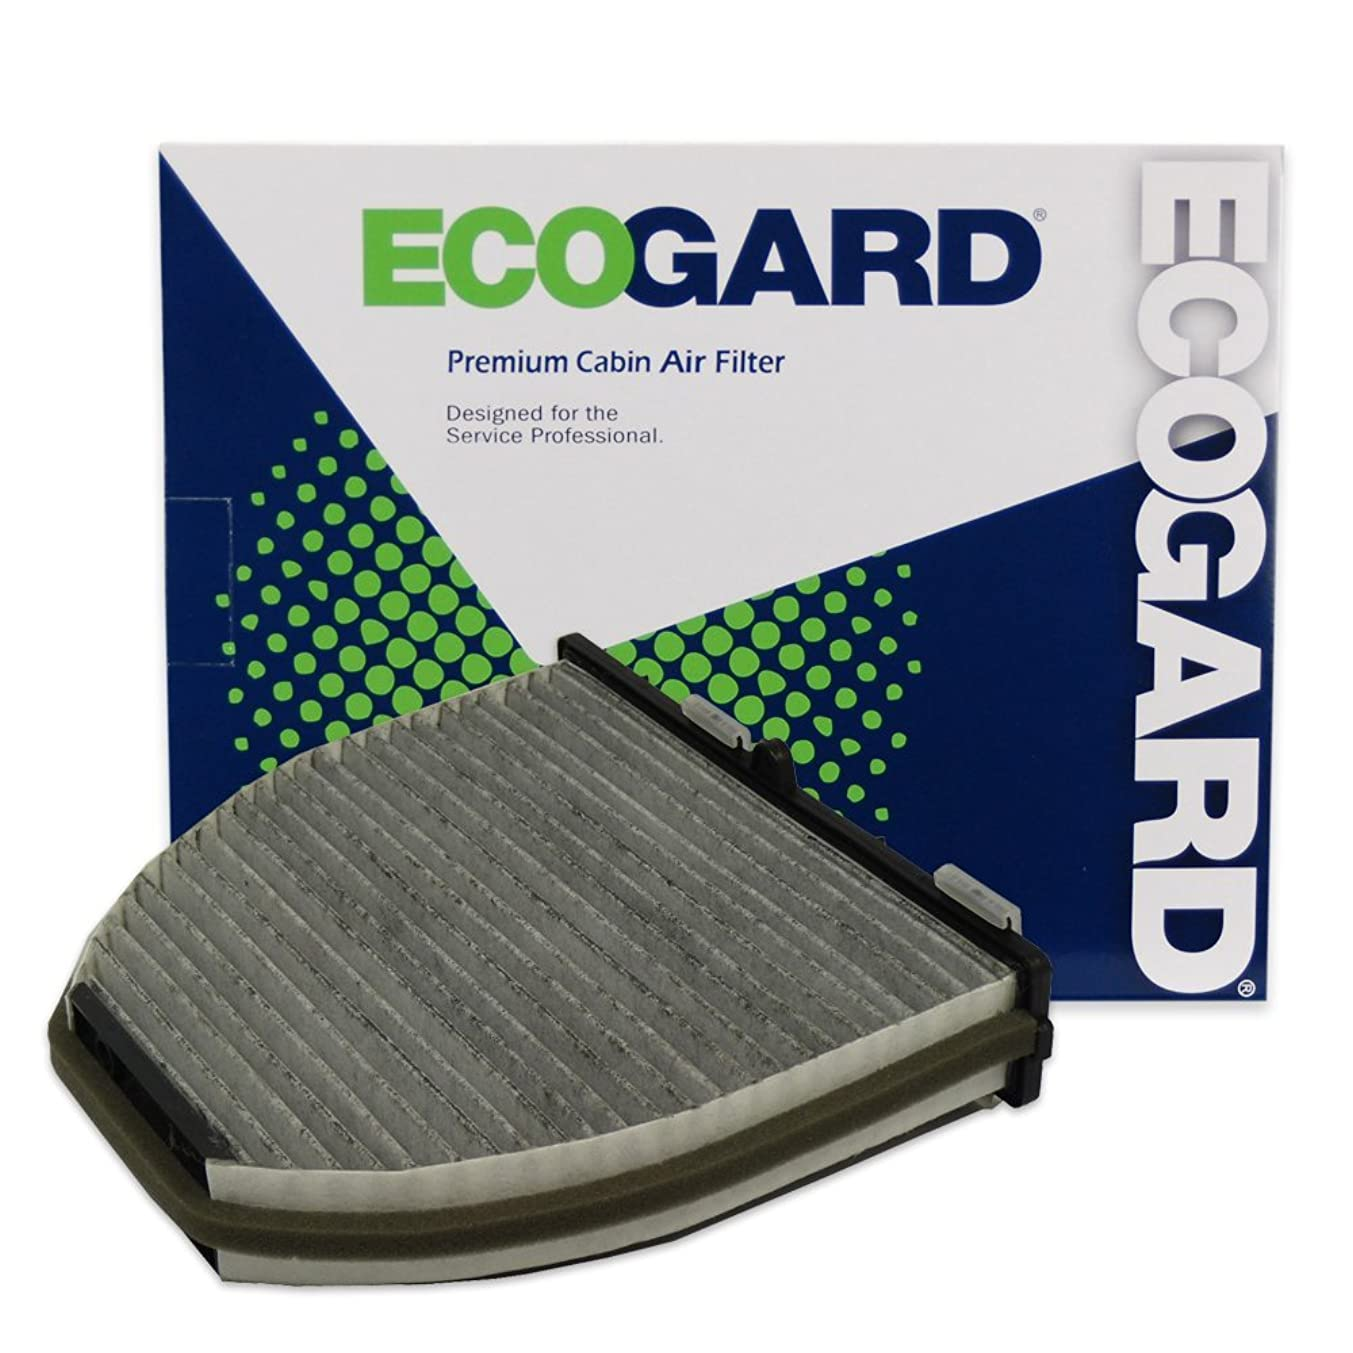 ECOGARD XC45844C Cabin Air Filter with Activated Carbon Odor Eliminator - Premium Replacement Fits Mercedes-Benz E350, C300, GLK350, C250, C350, E550, E400, CLS550, GLK250, SL550, CLS400, C63 AMG